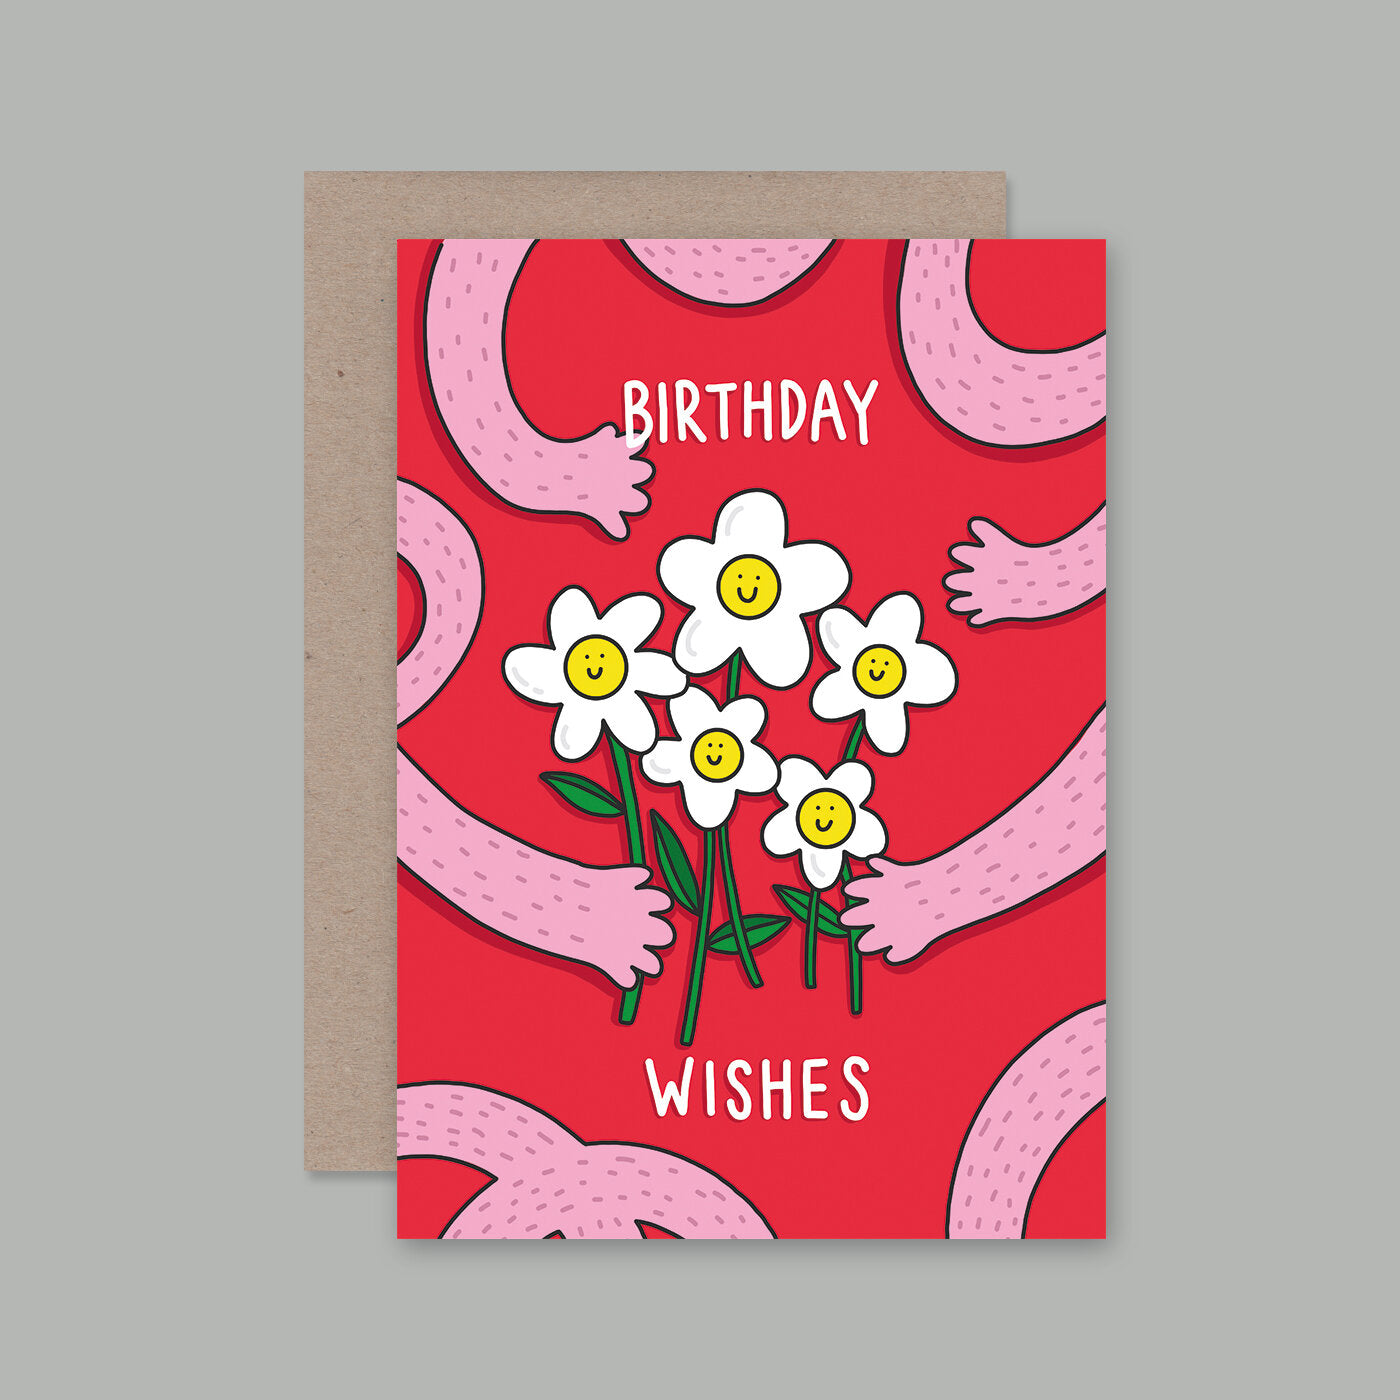 Birthday Wishes Card | AHD Paper Co.